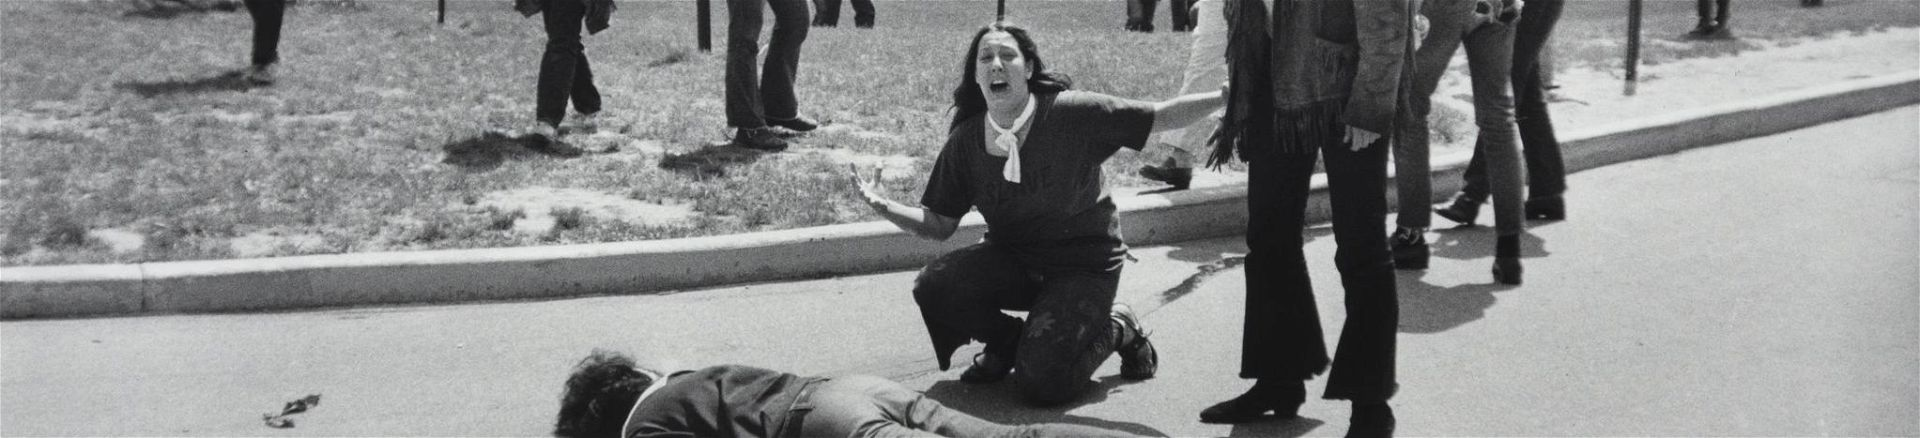 Kent State: The End of the 1960s and the Beginning of Something Far Worse